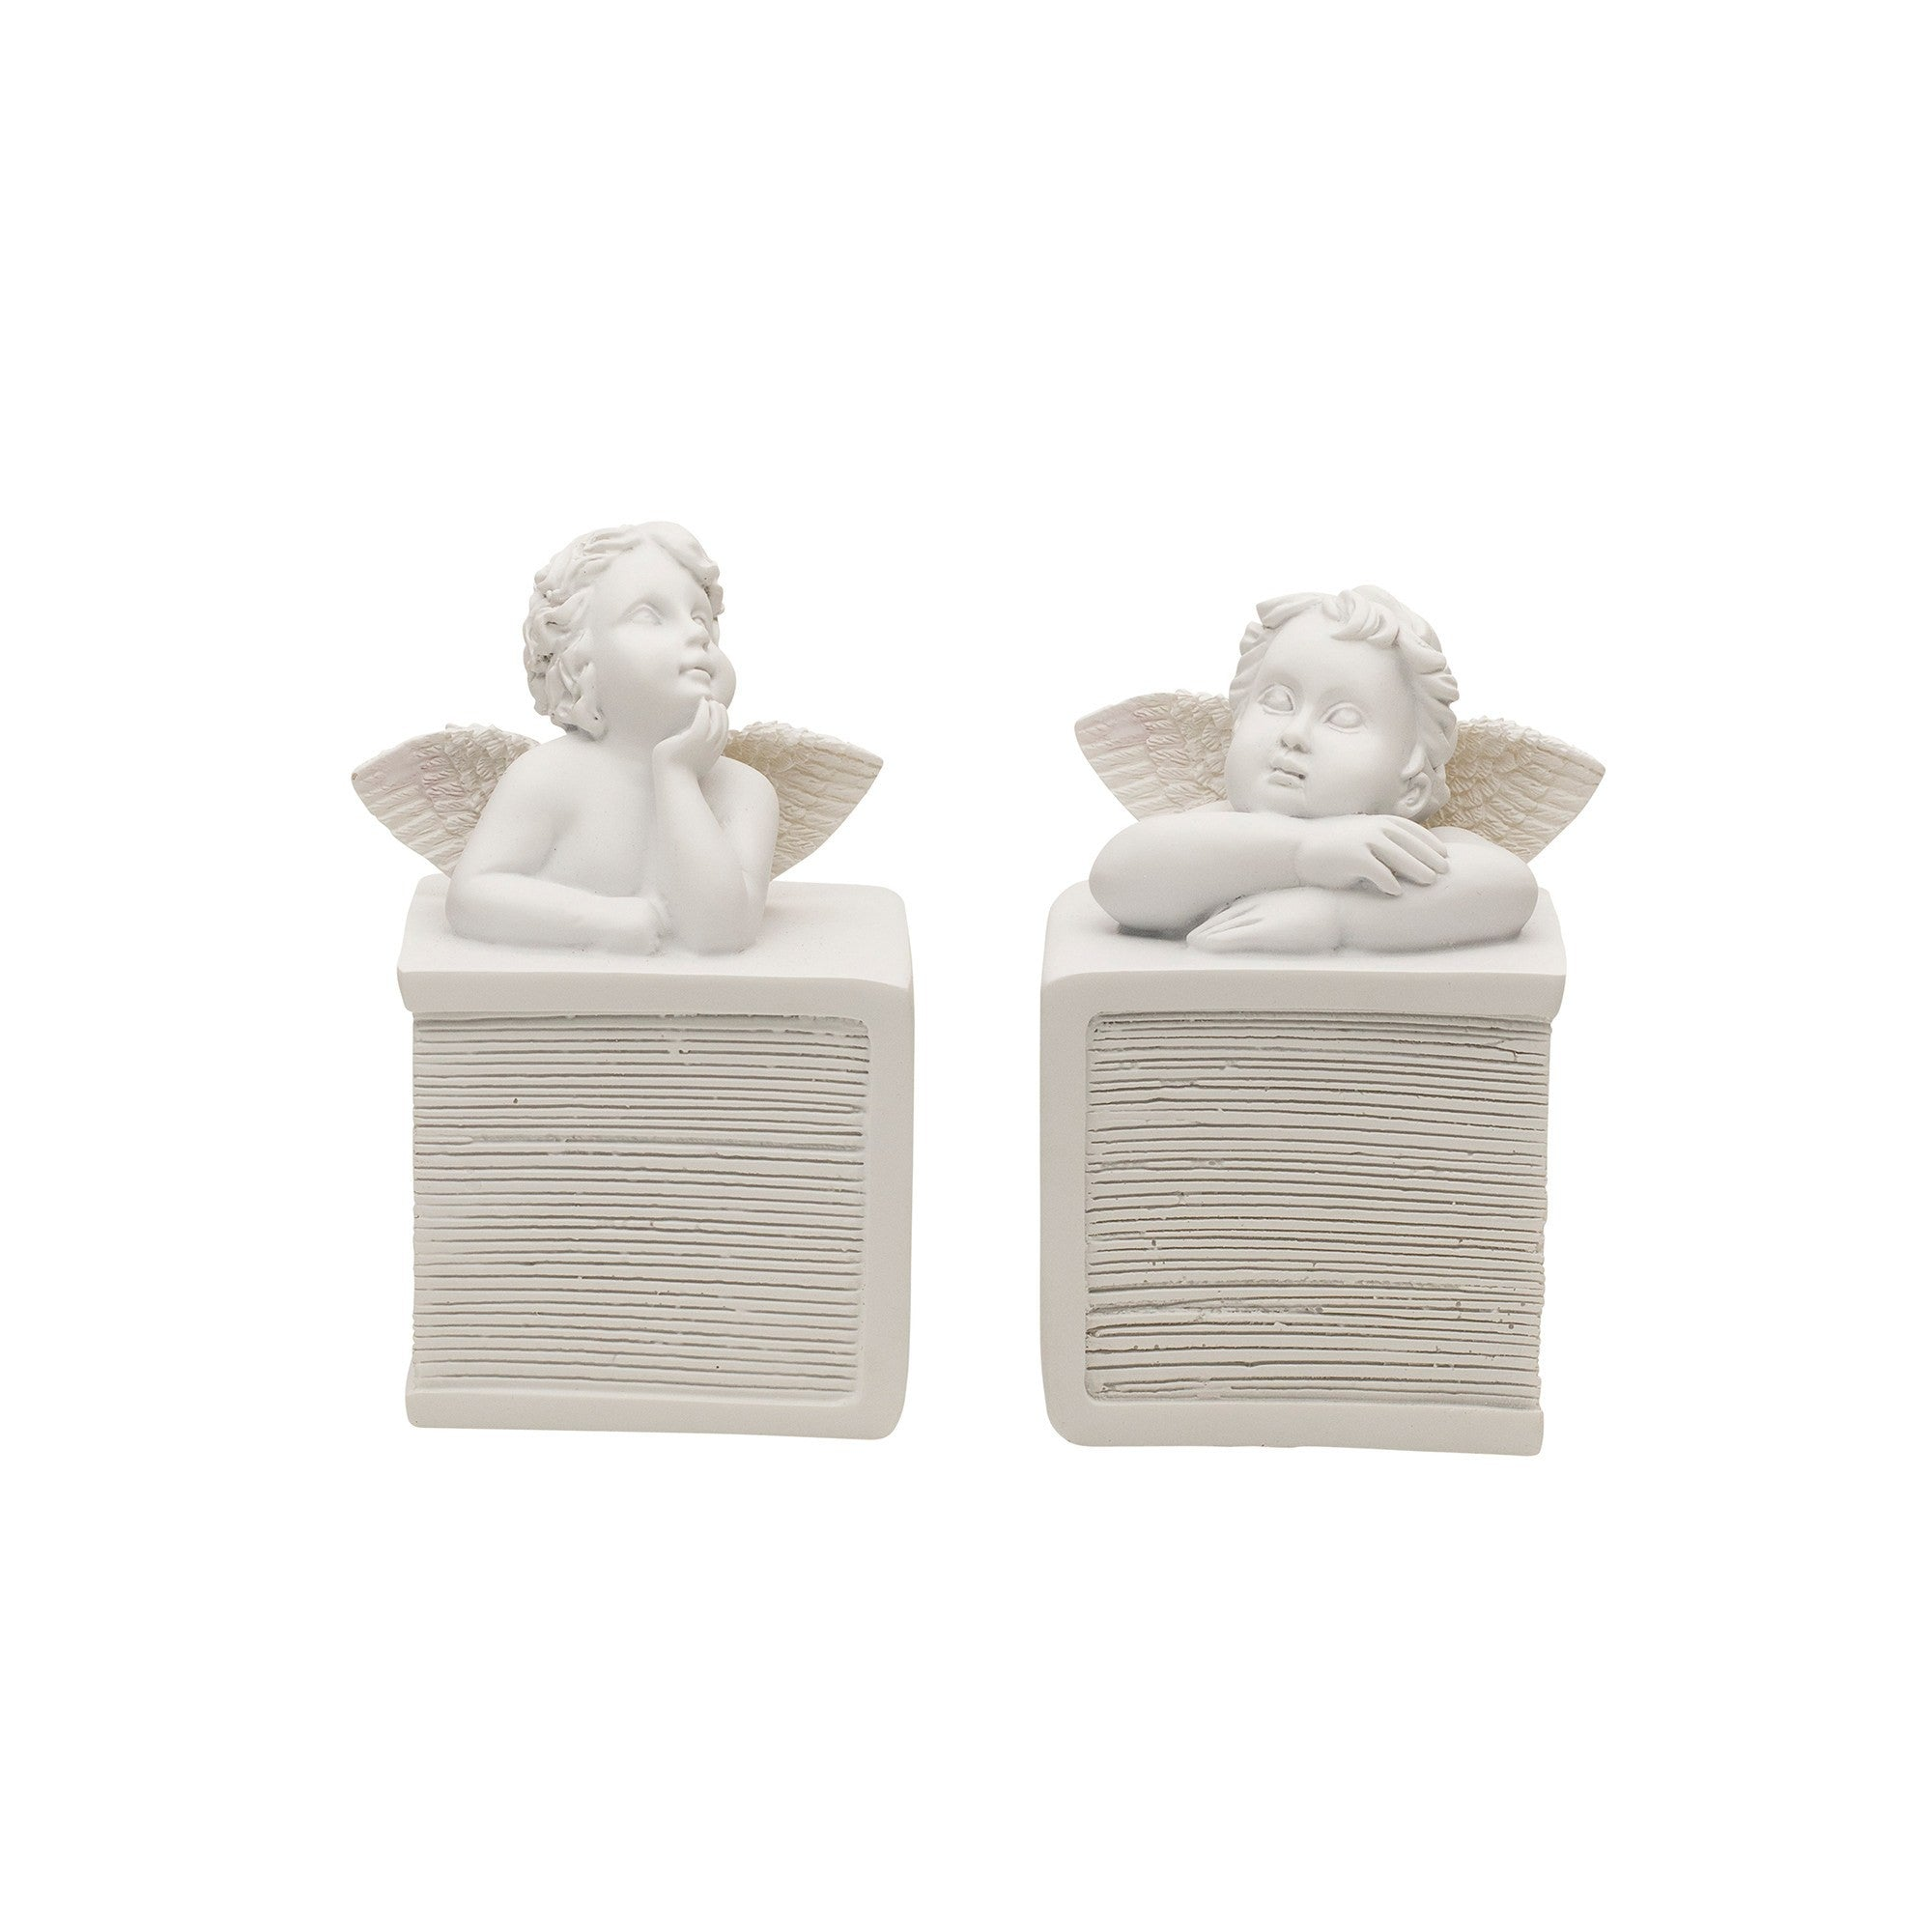 Angelic Cherub Bookends - Set of 2 in White